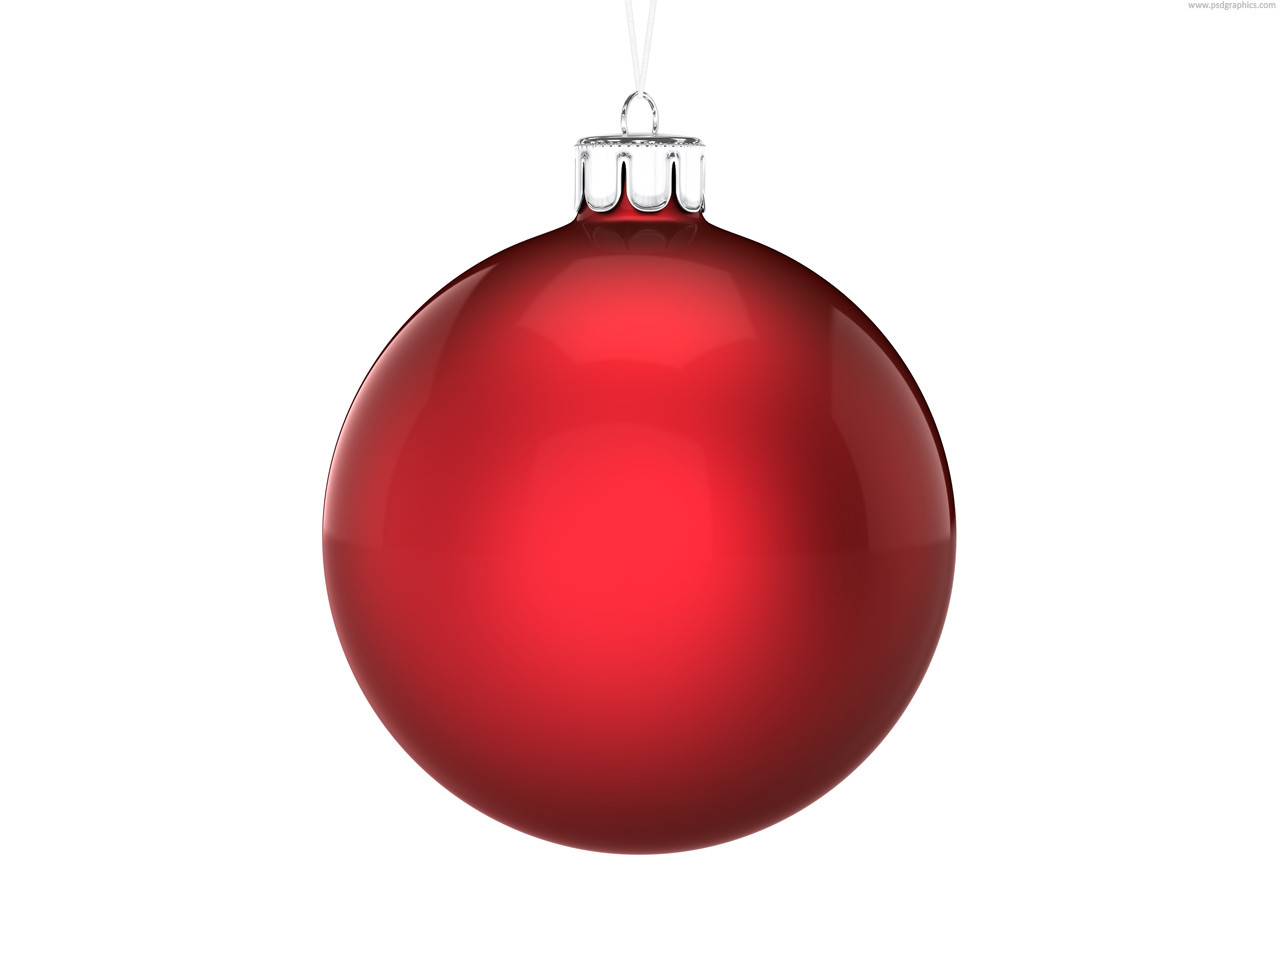 Red Christmas Tree ornaments Awesome Red Christmas ornament Clipart – Happy Holidays Of Attractive 44 Pics Red Christmas Tree ornaments